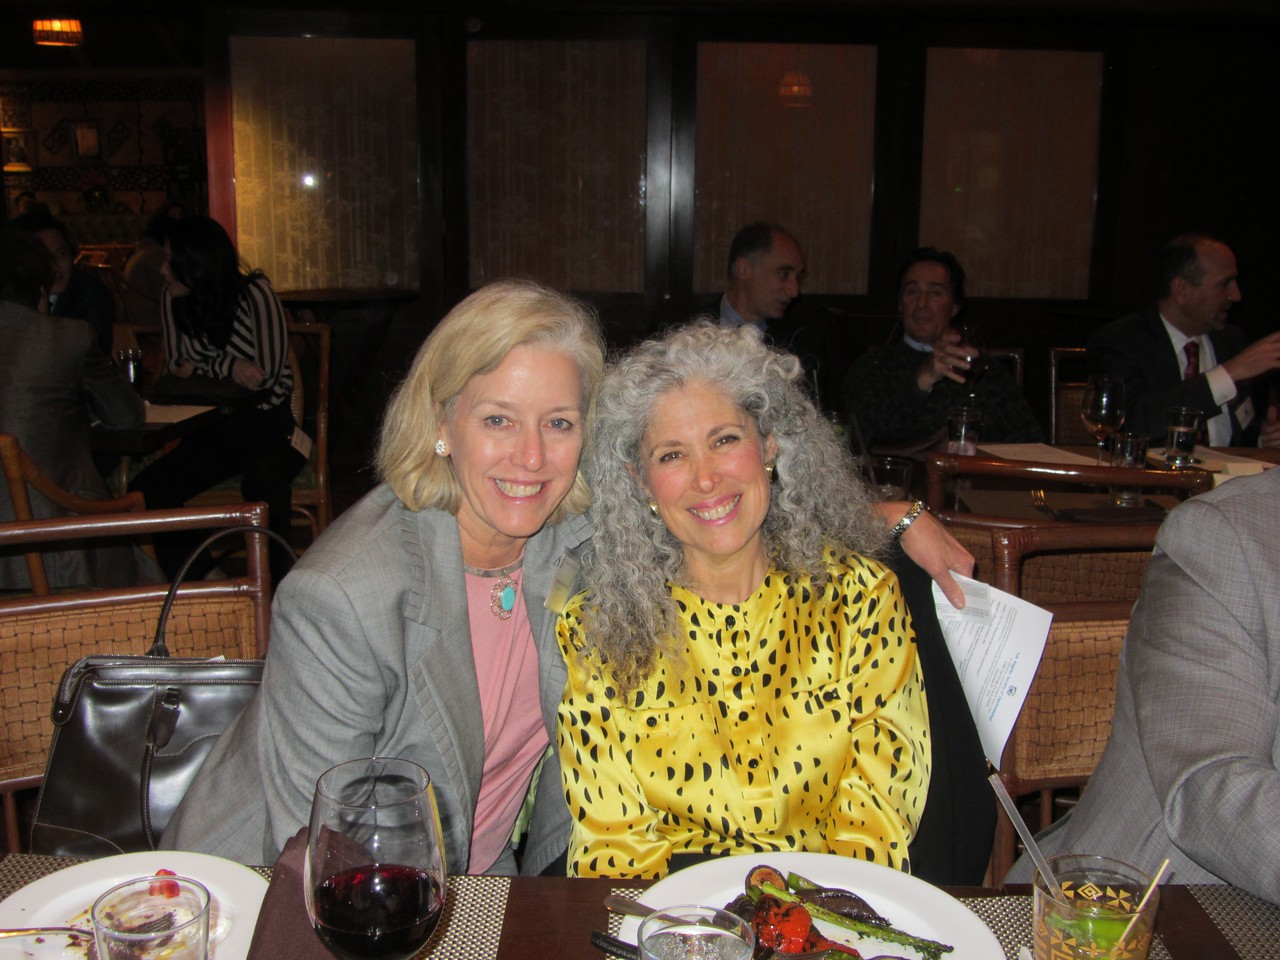 Louise Cooley Davis and Lisa Brothers Arbisser, the daughter of Joyce Brothers, practices in Iowa, spoke about difficult cataract cases.